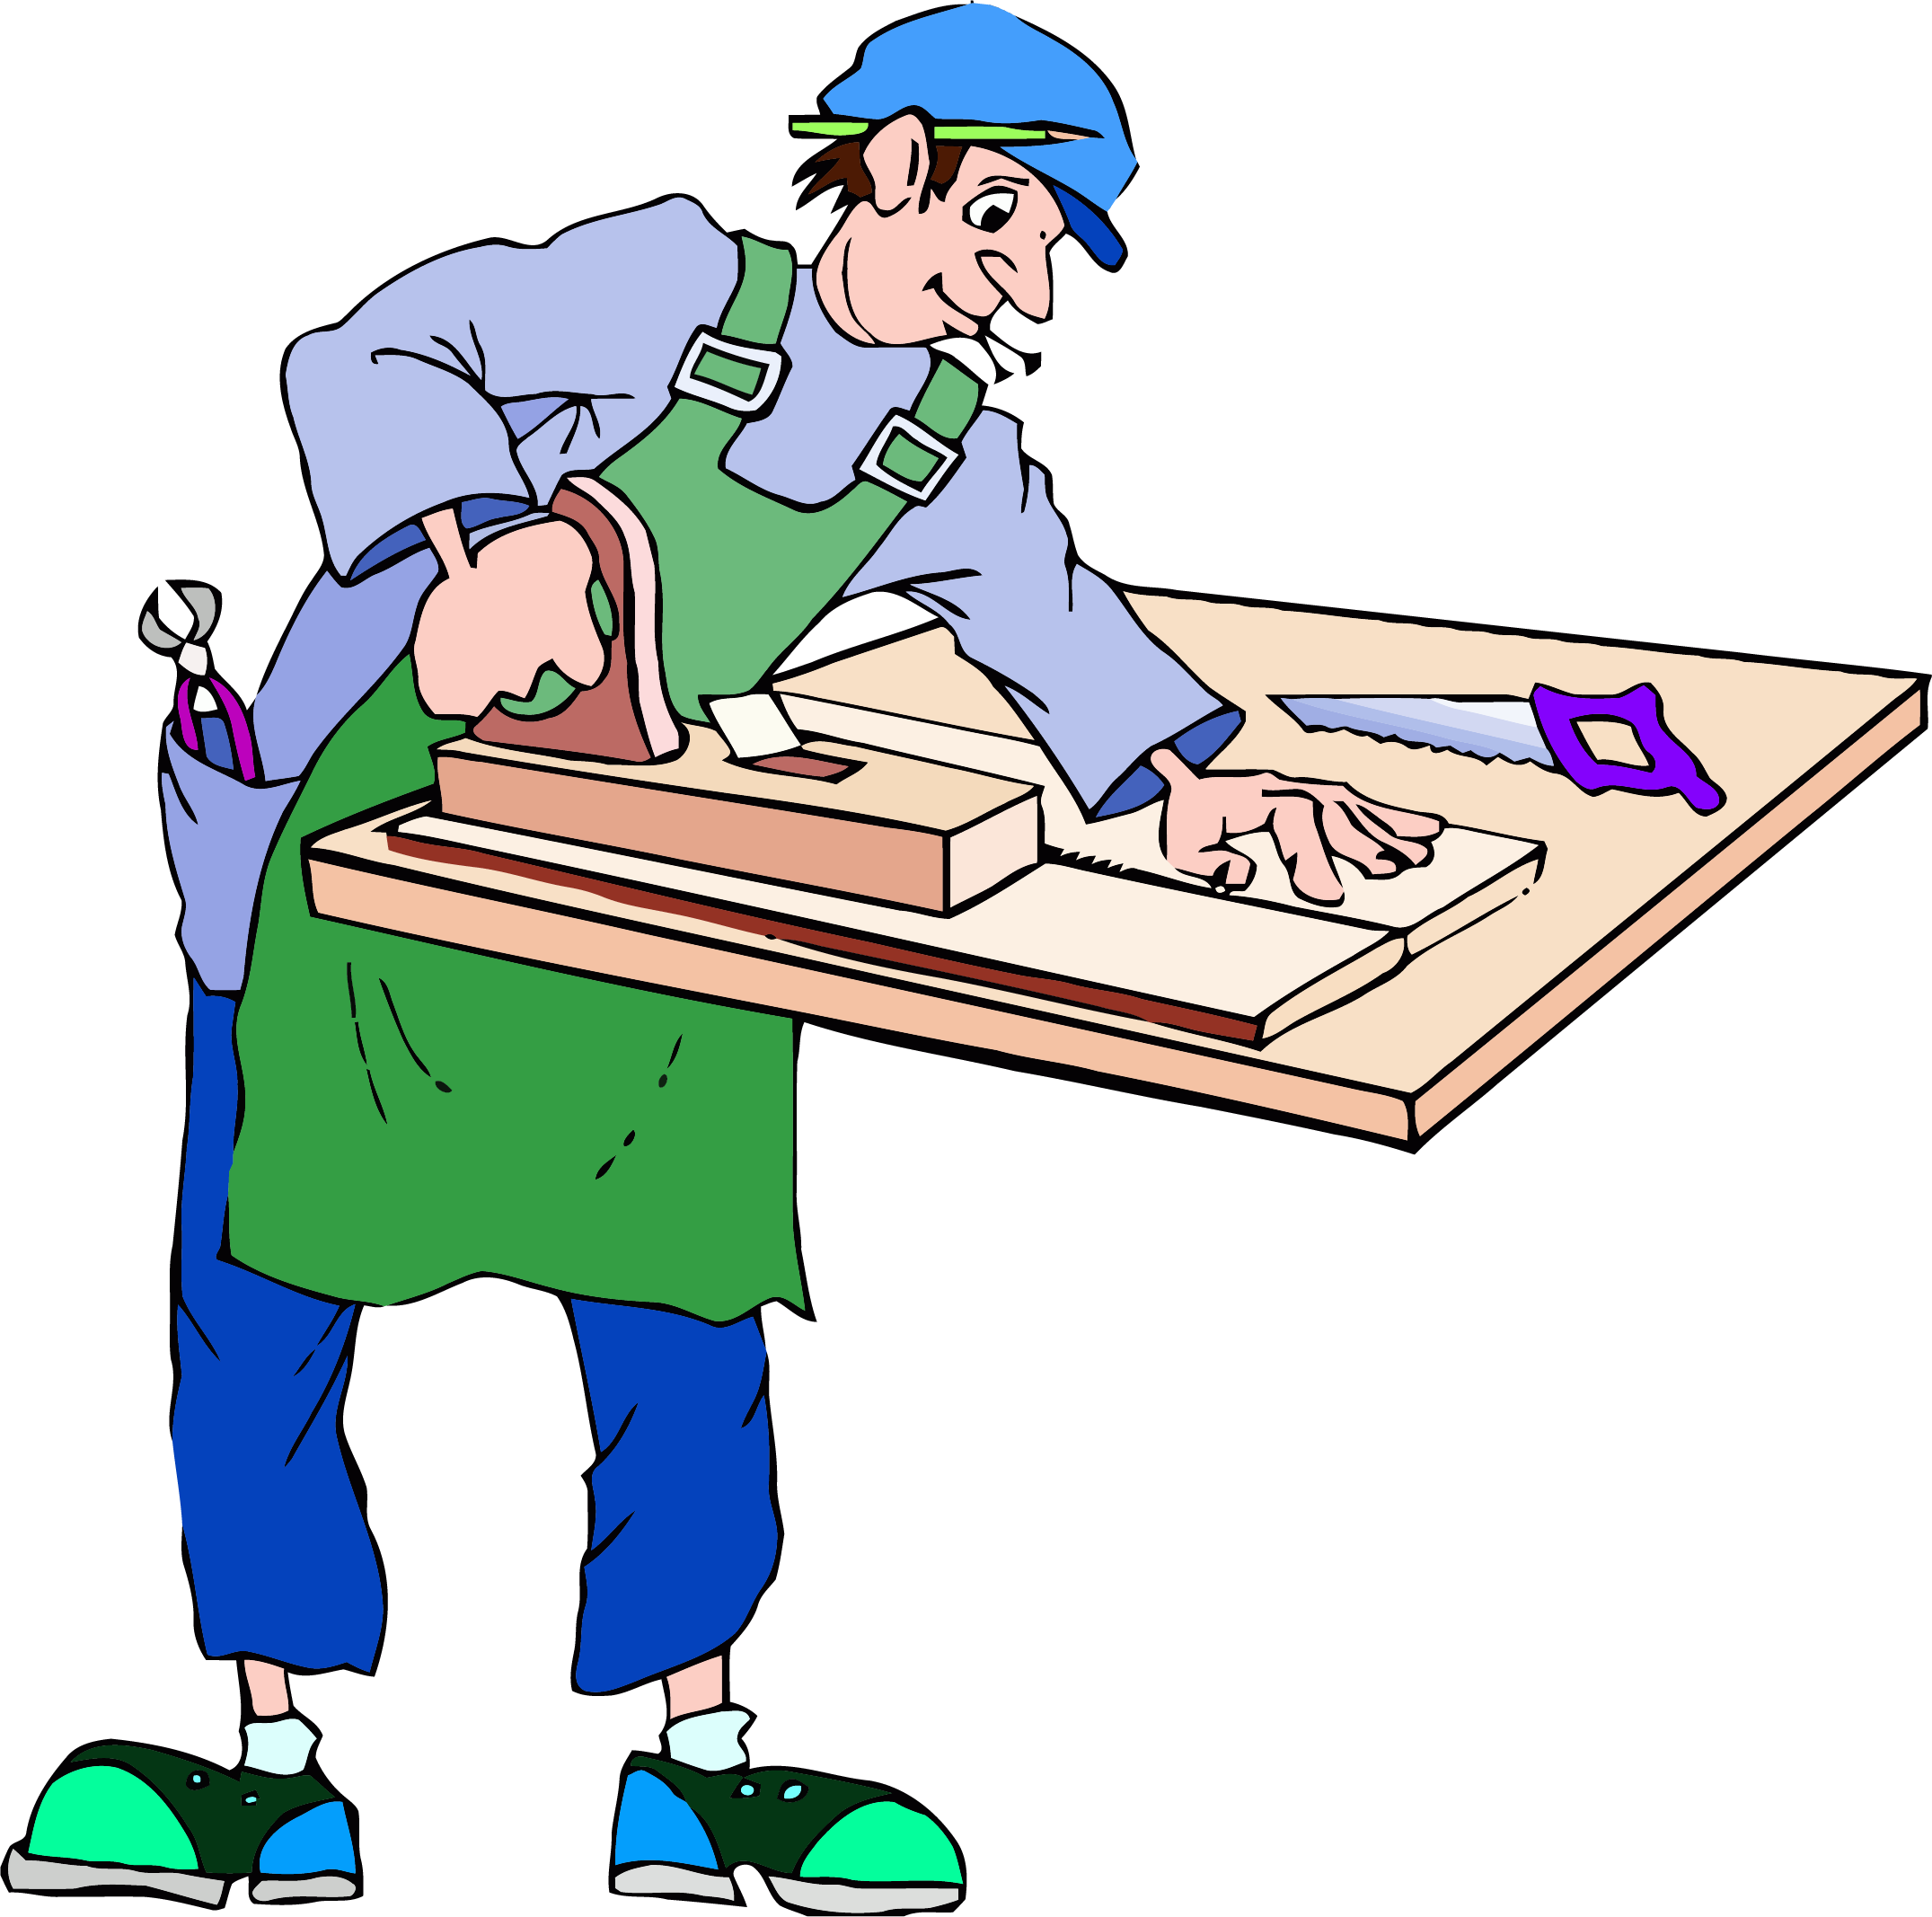 Man clipart carpenter. Rasp png clipartly comclipartly